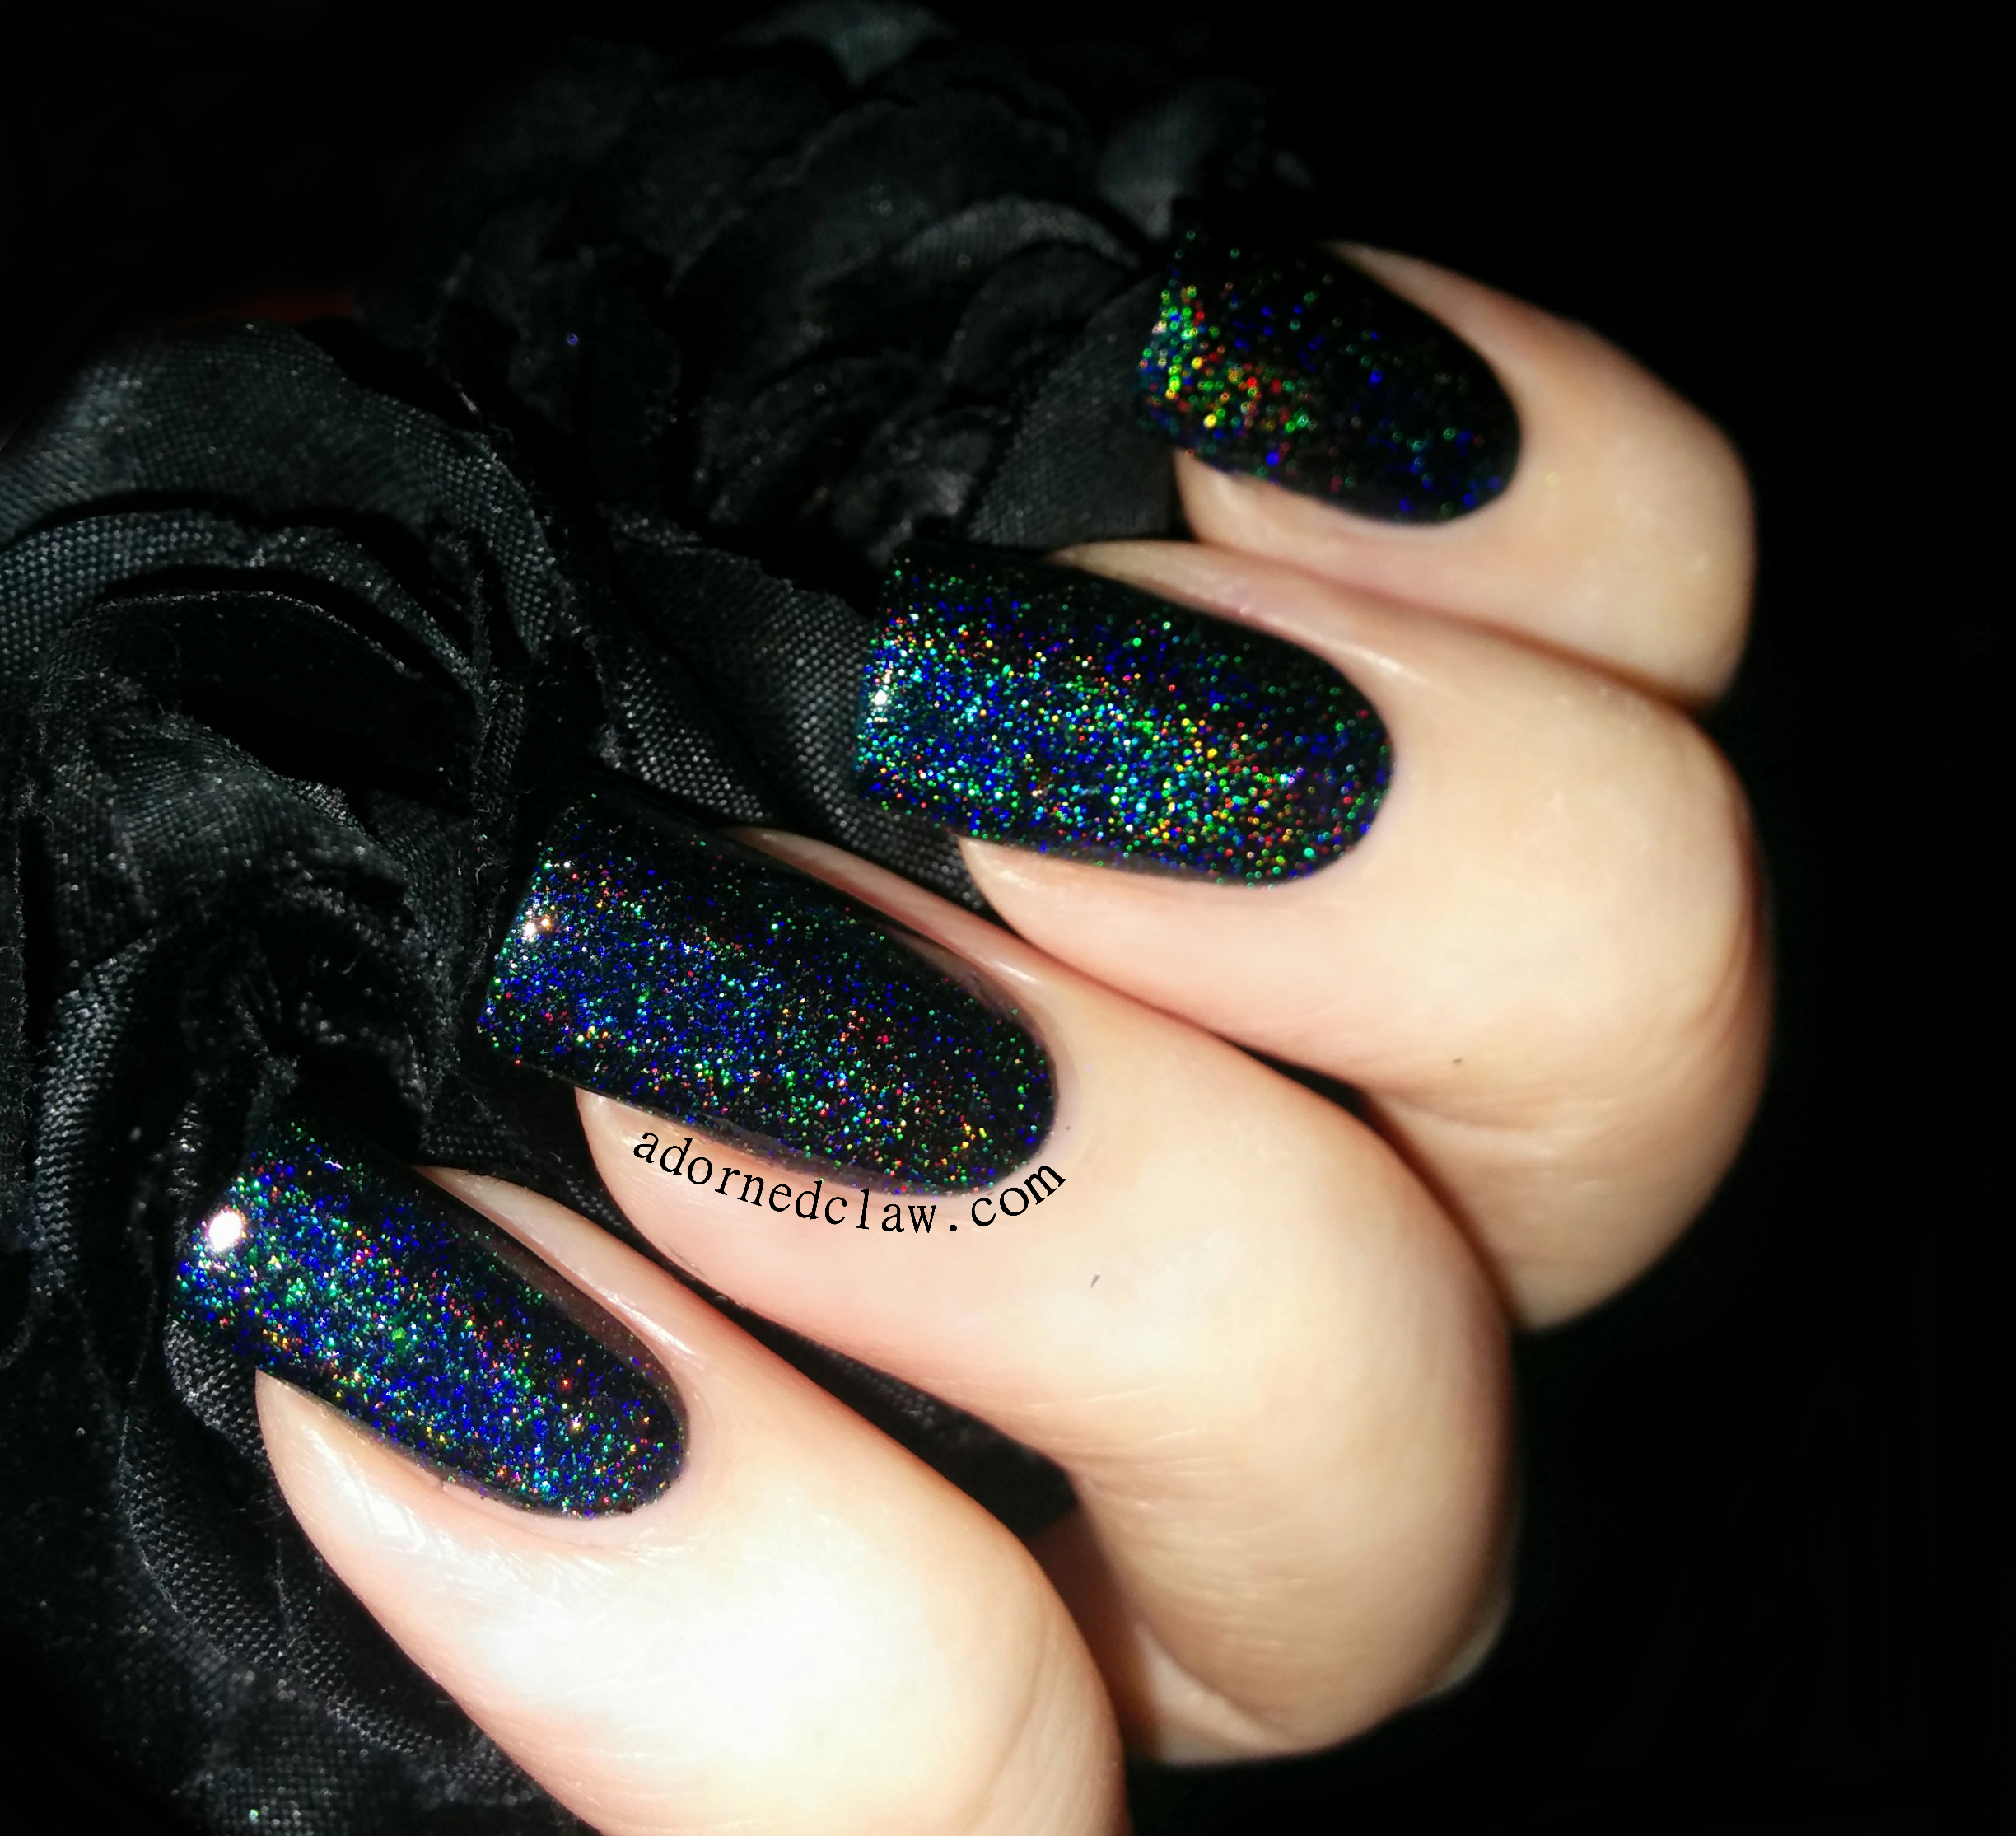 Holographic | The Adorned Claw